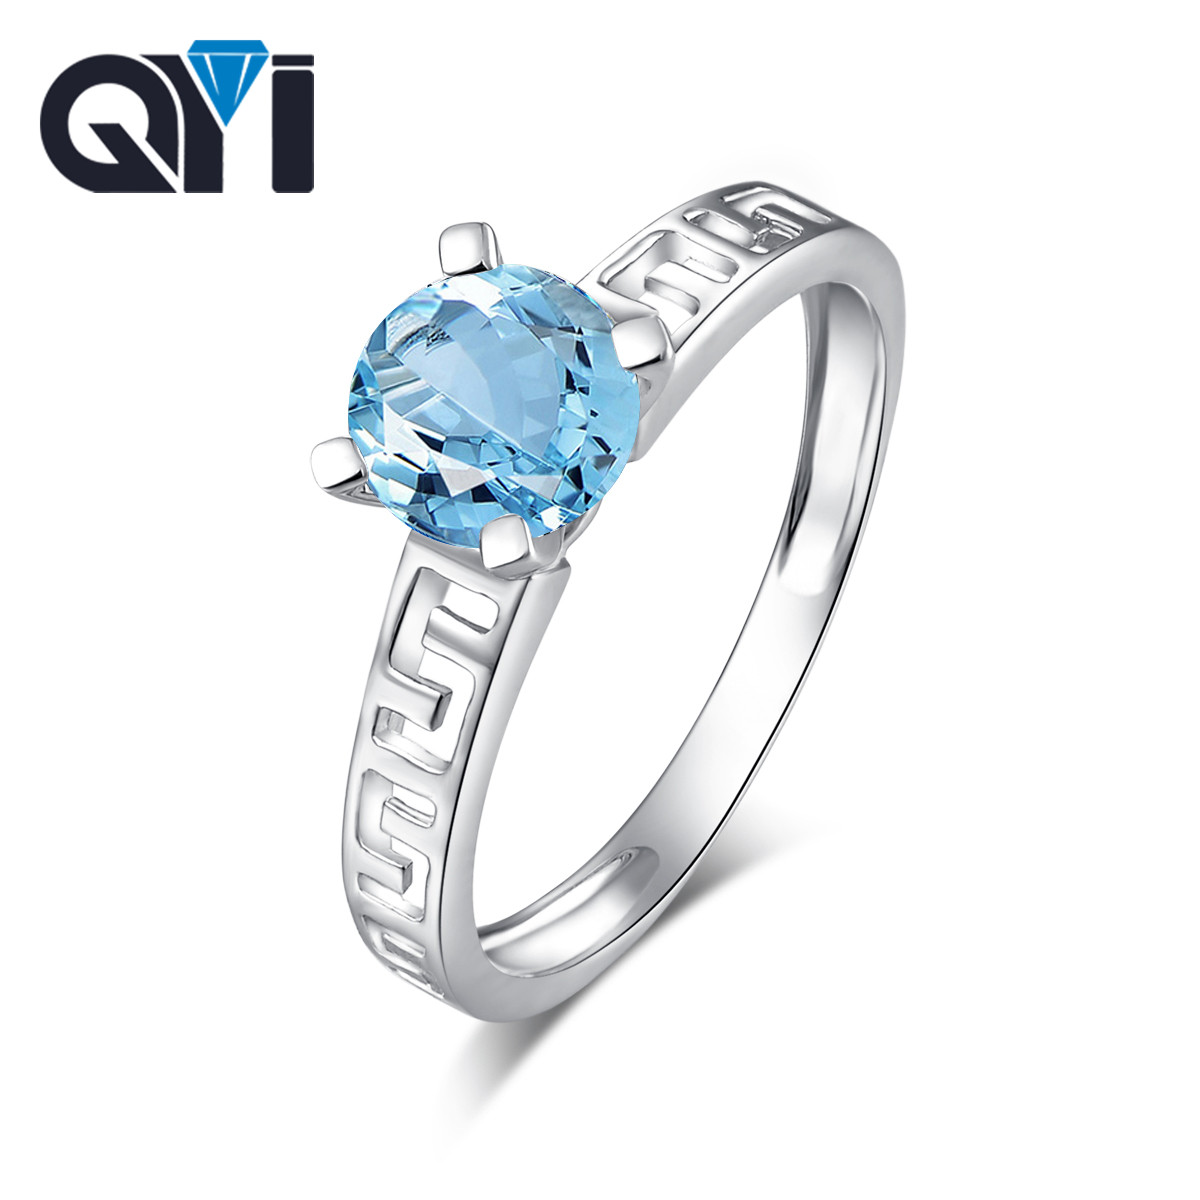 Qyi Classic Sky Blue Stone Natural Topaz 925 Sterling Silver Round Rings For Women Fine Jewelry Engagement Fashion Accessories To Be Renowned Both At Home And Abroad For Exquisite Workmanship Rings Fine Jewelry Skillful Knitting And Elegant Design